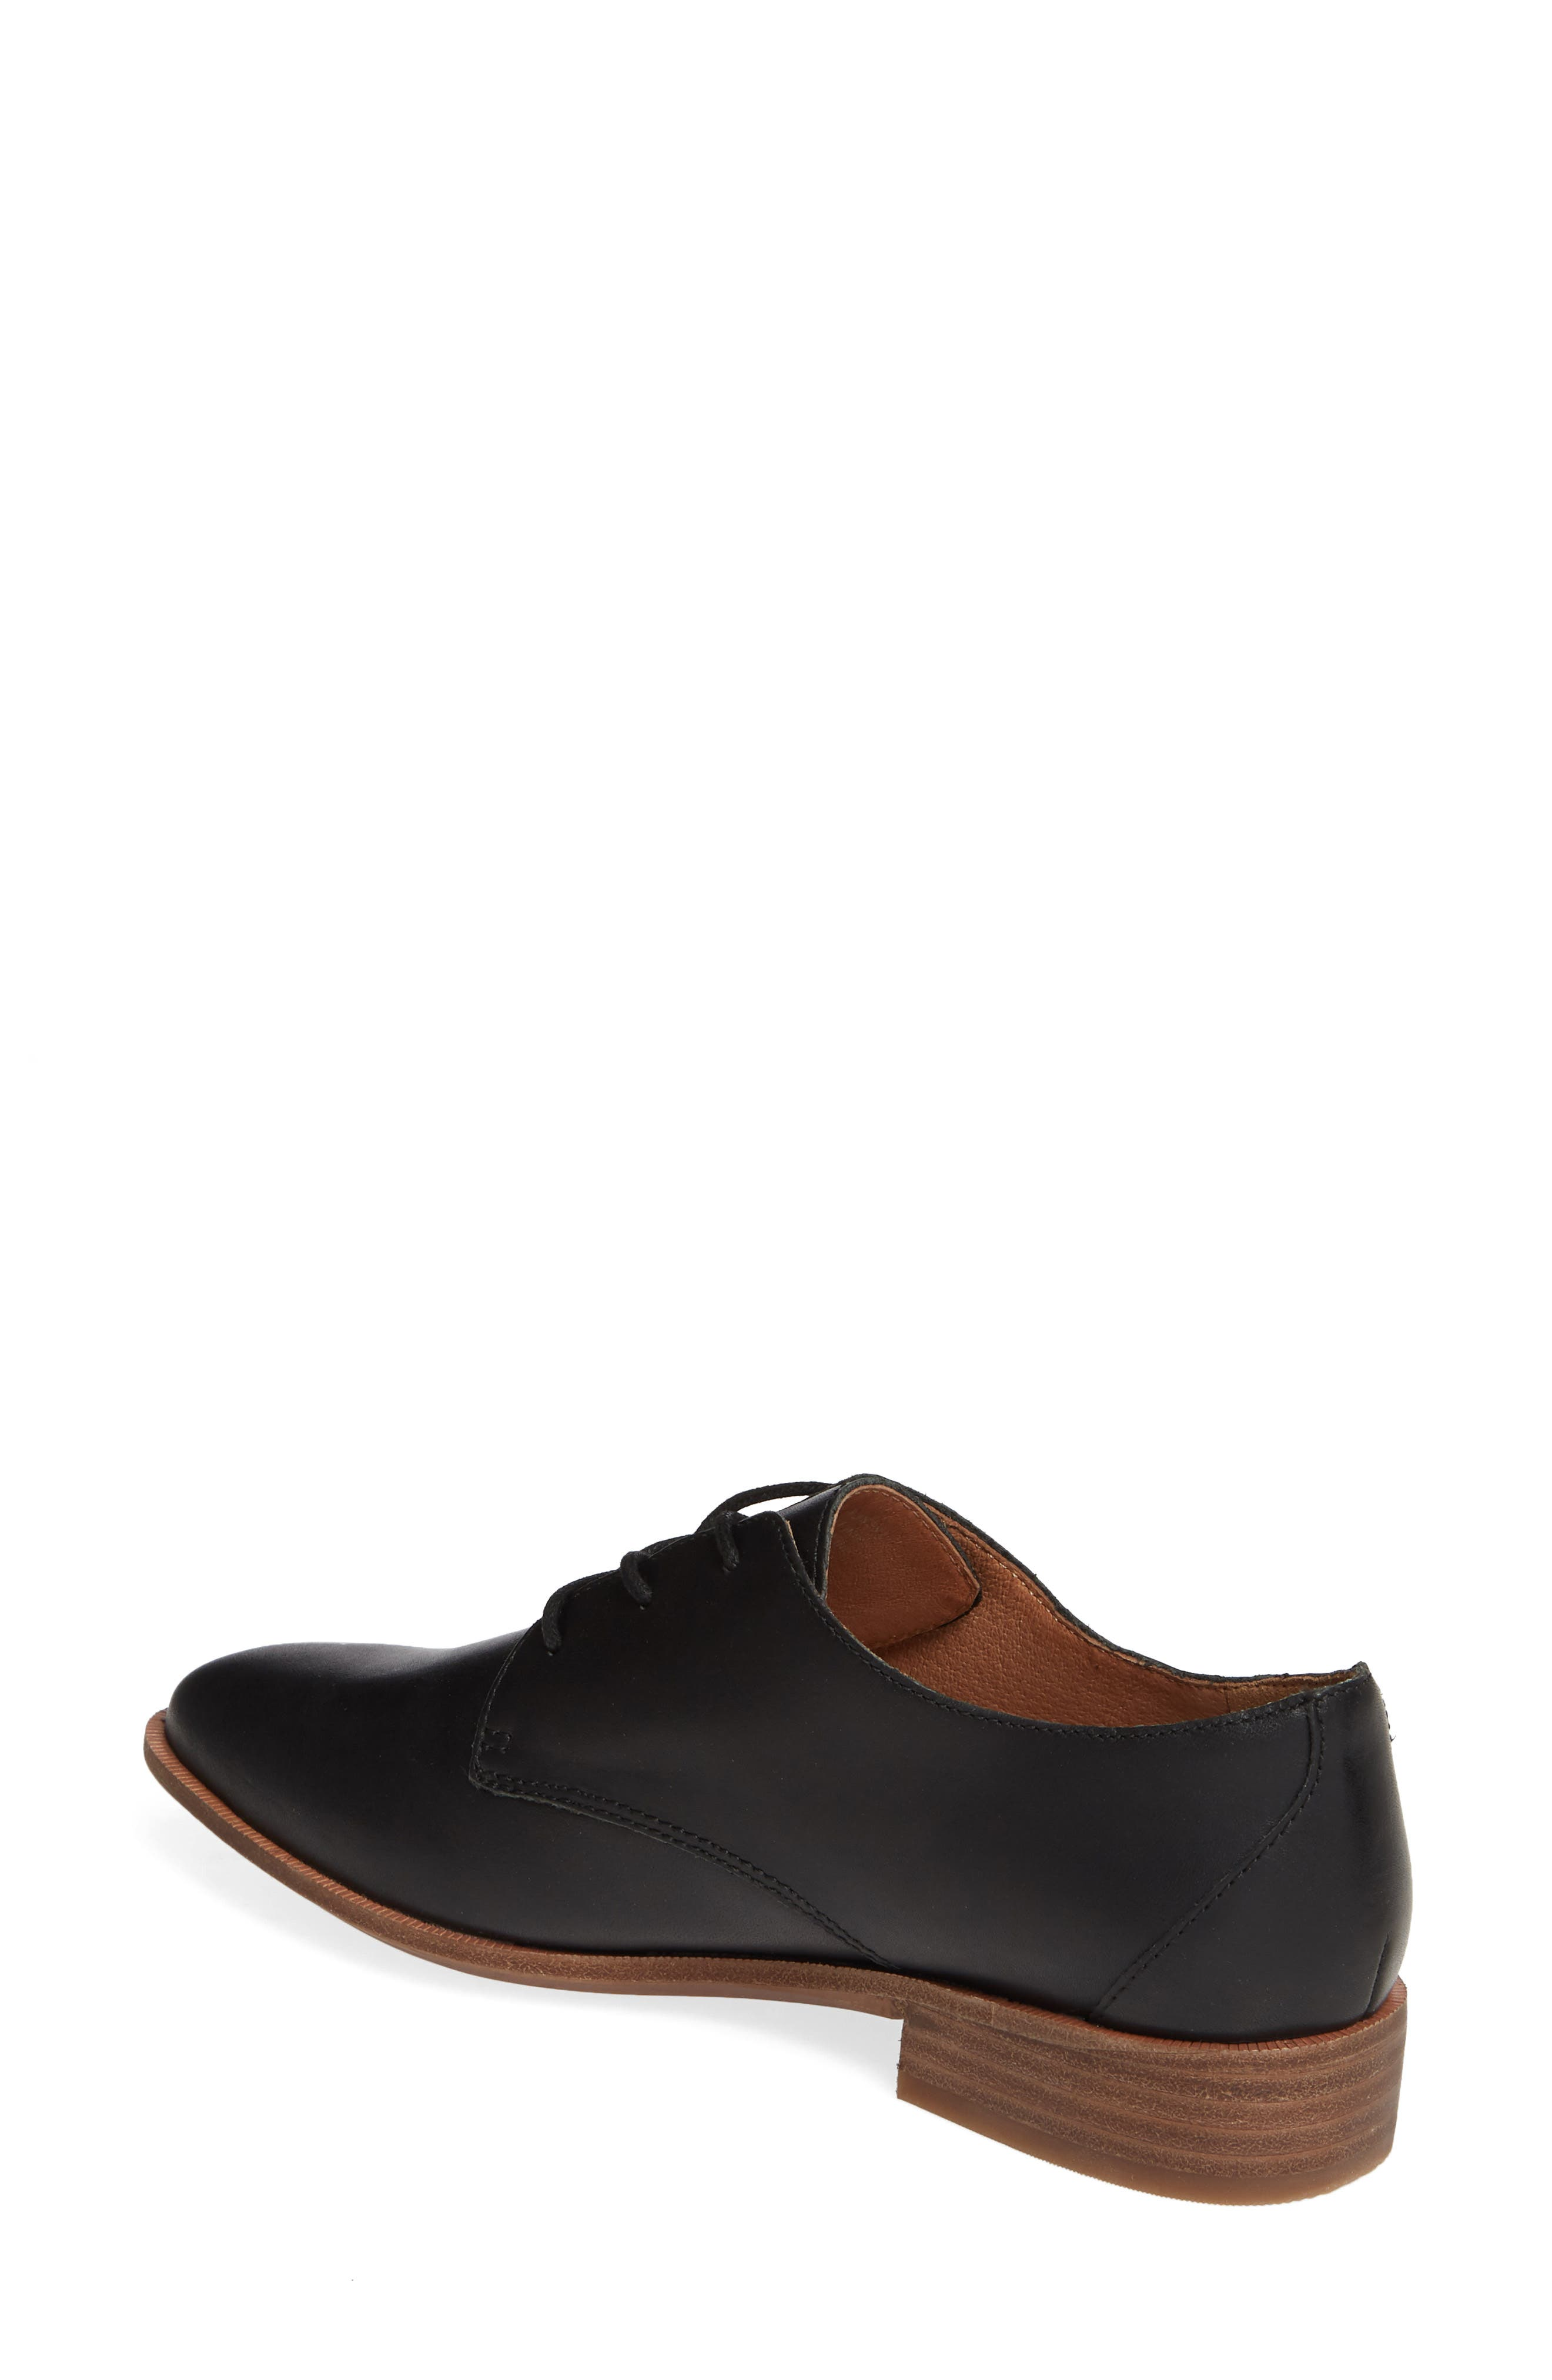 MADEWELL, The Frances Derby, Alternate thumbnail 2, color, TRUE BLACK